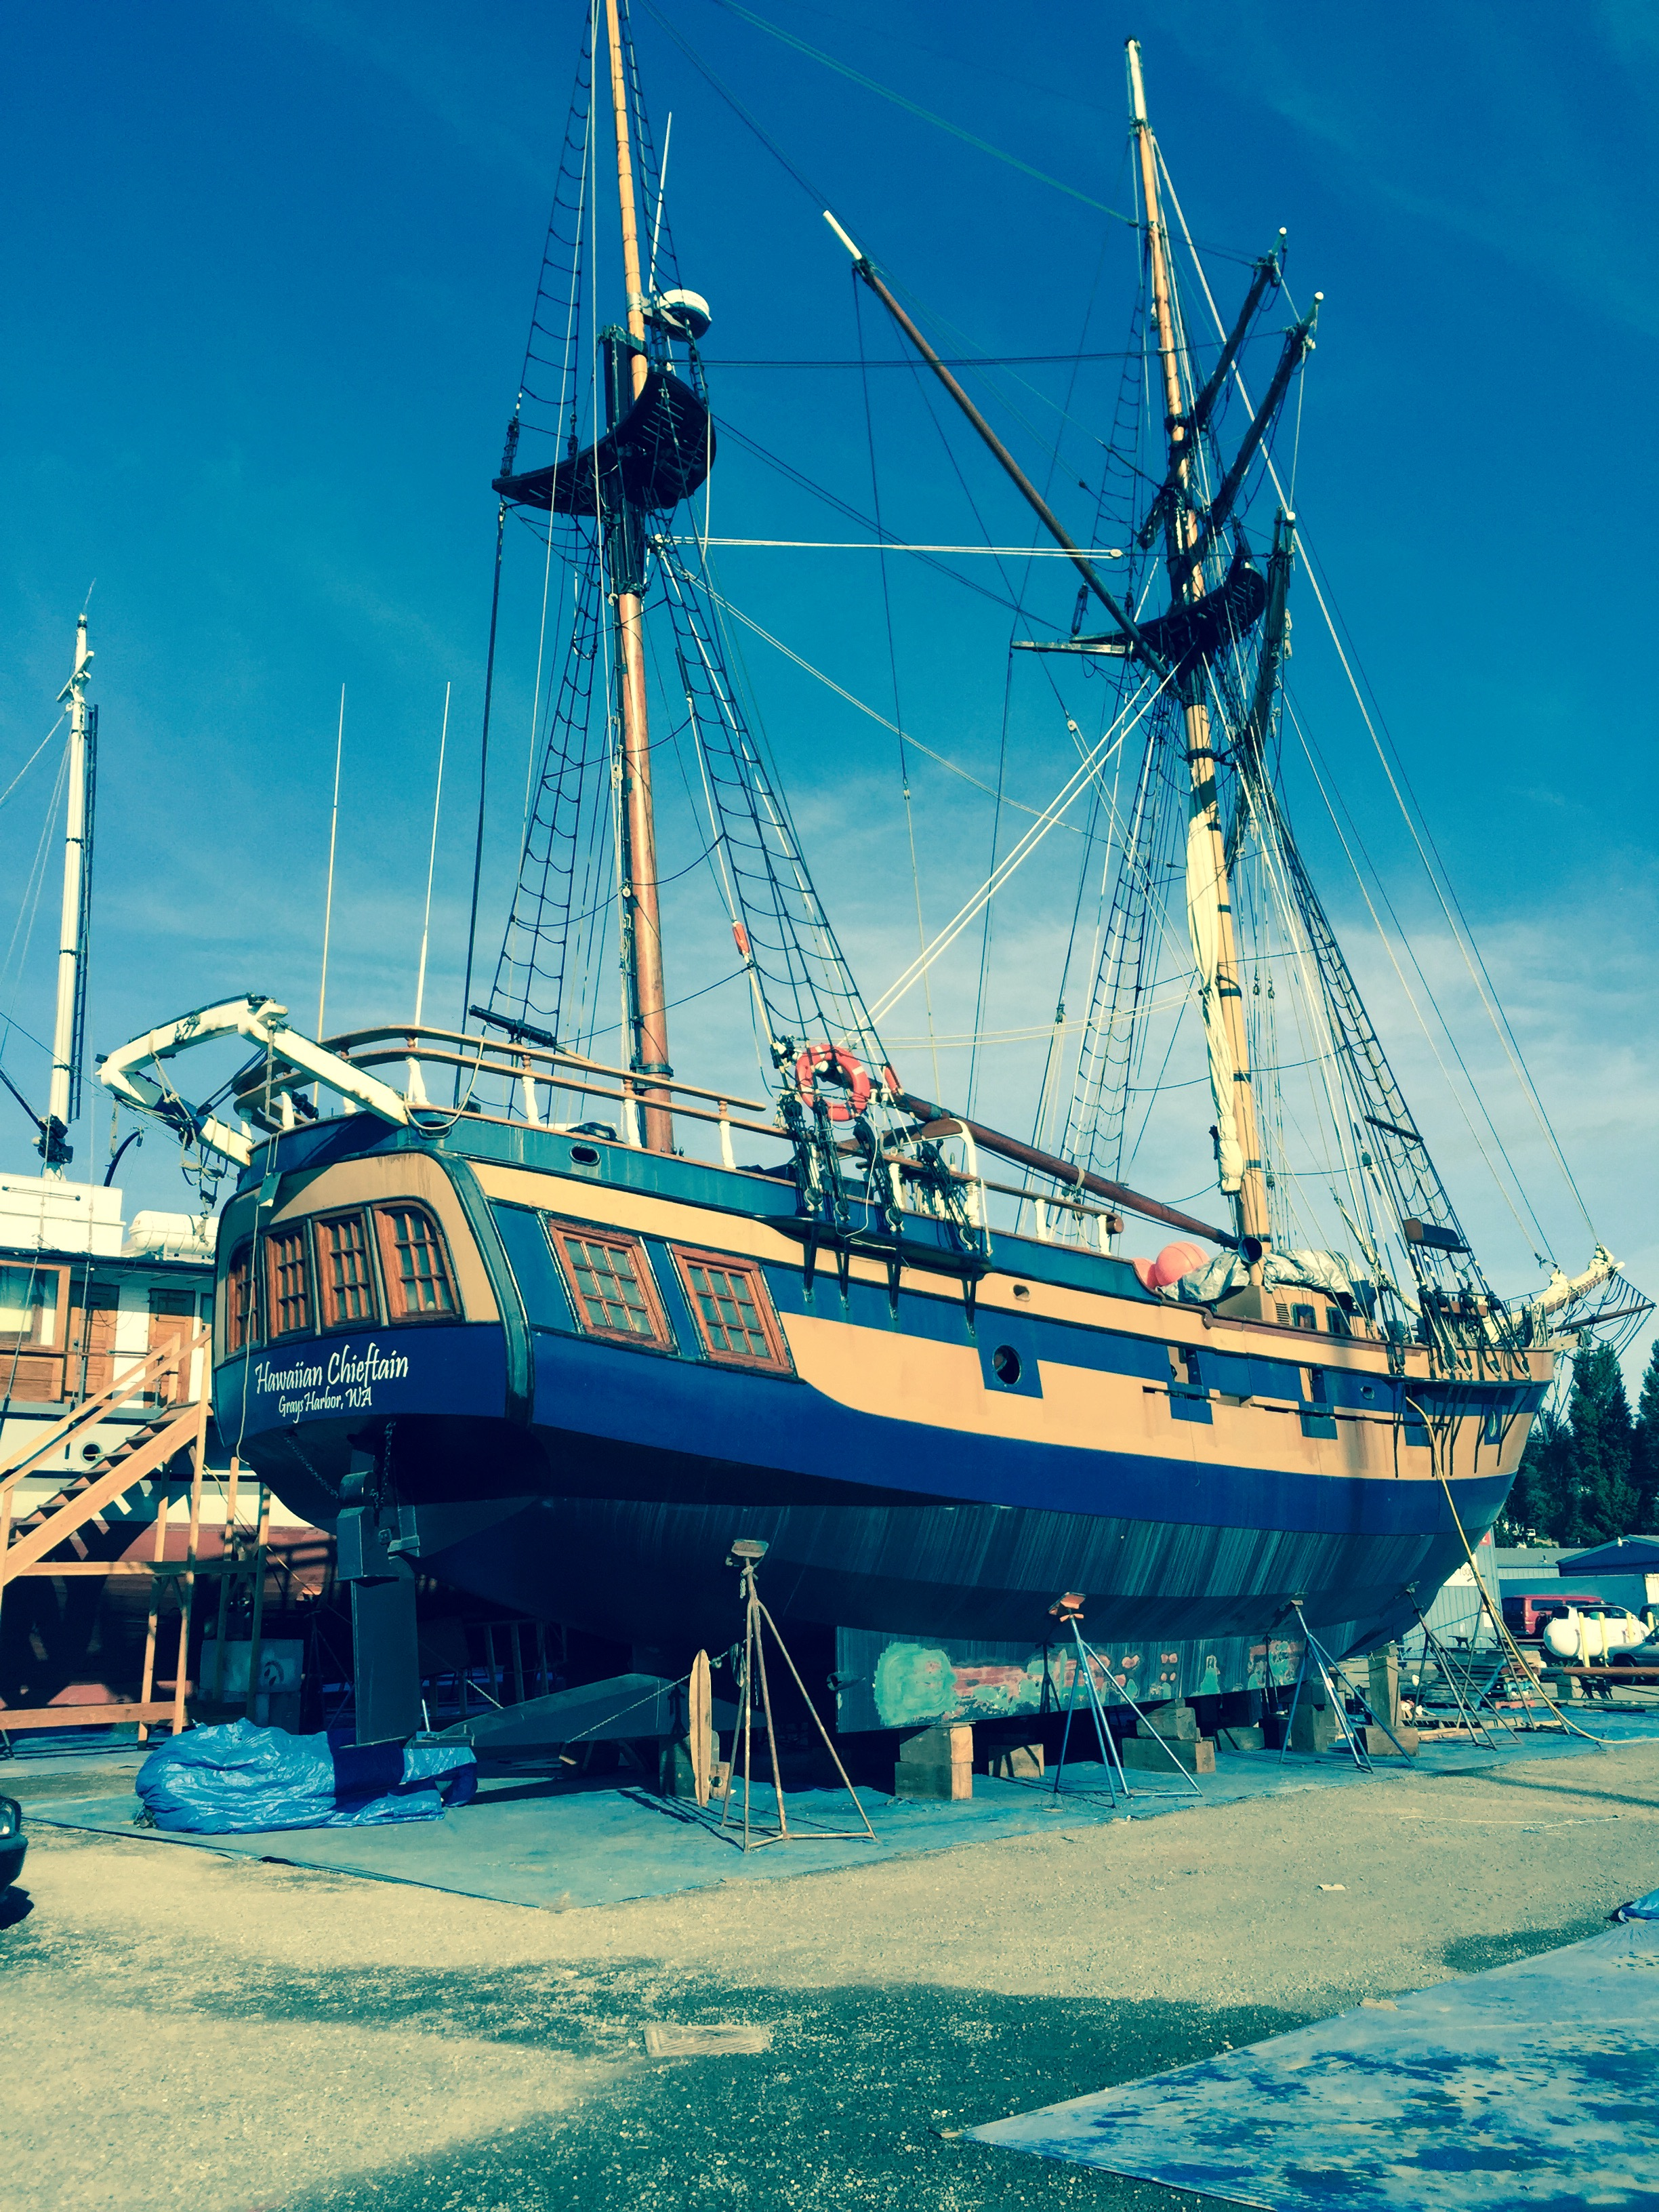 Pirate ship at Port Townsend